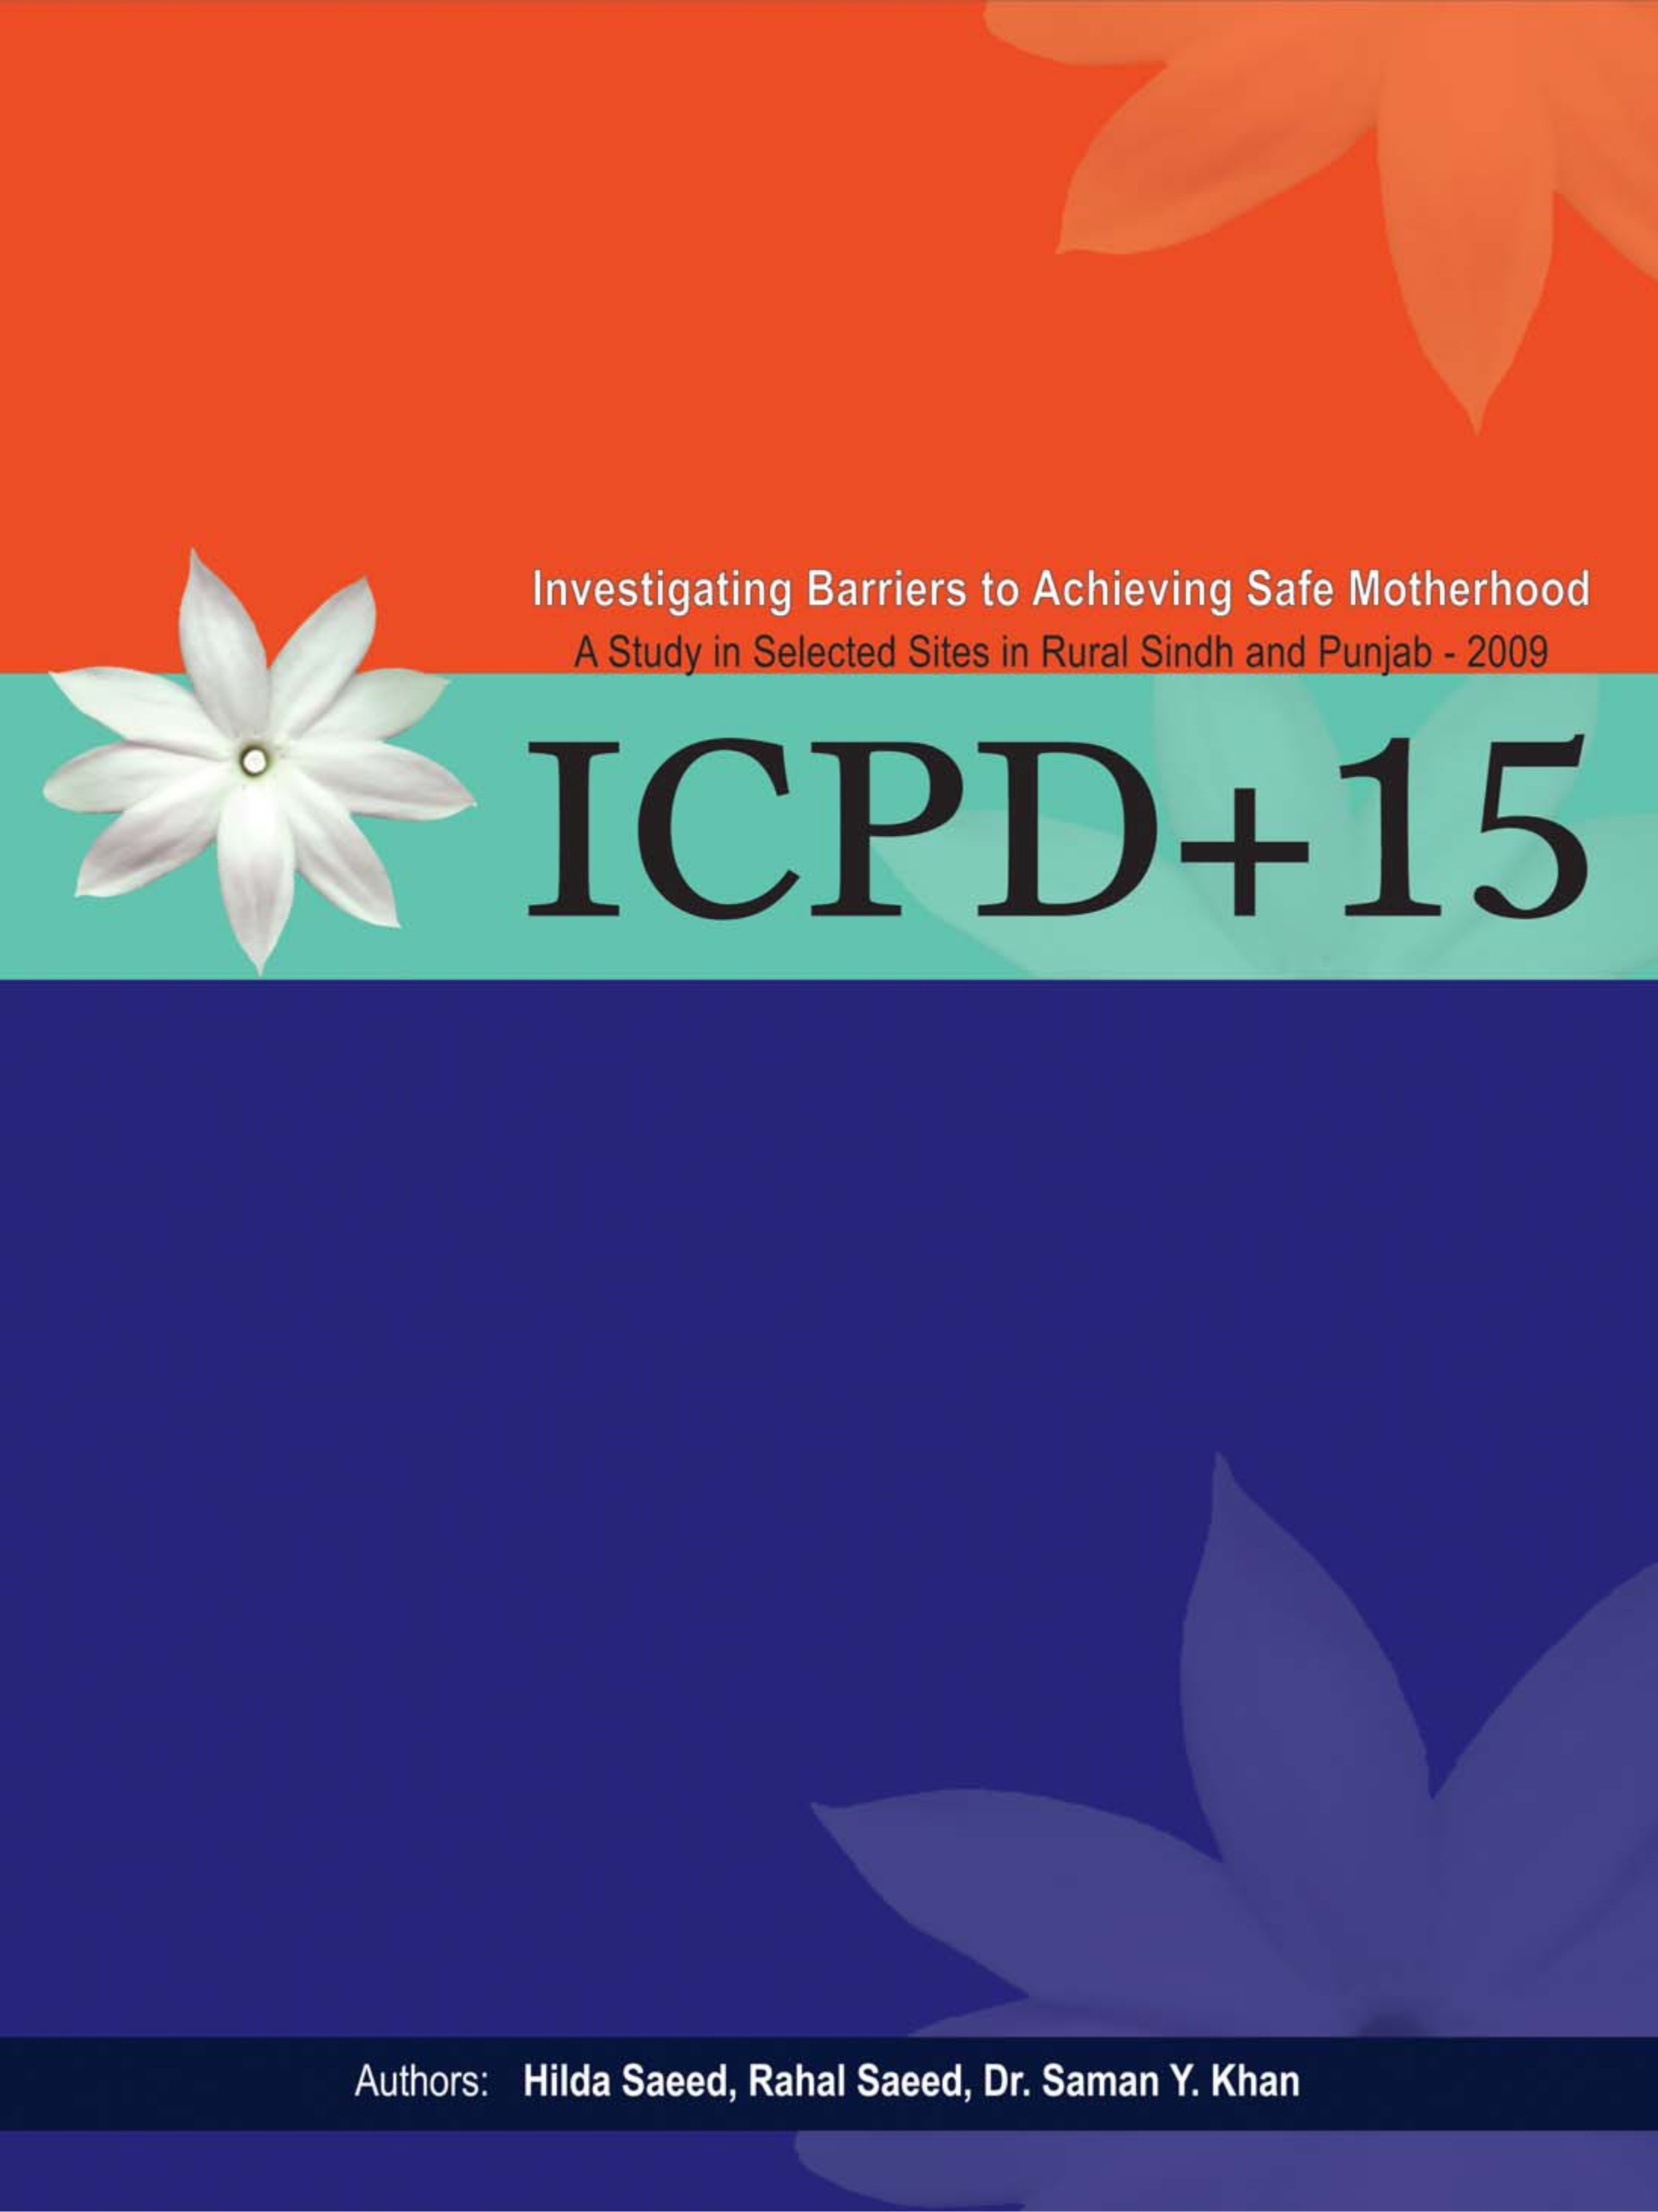 ICPD +15 Investigating Barriers to Achieving Safe Motherhood, A Study in Selected Sites in Rural Sindh and Punjab